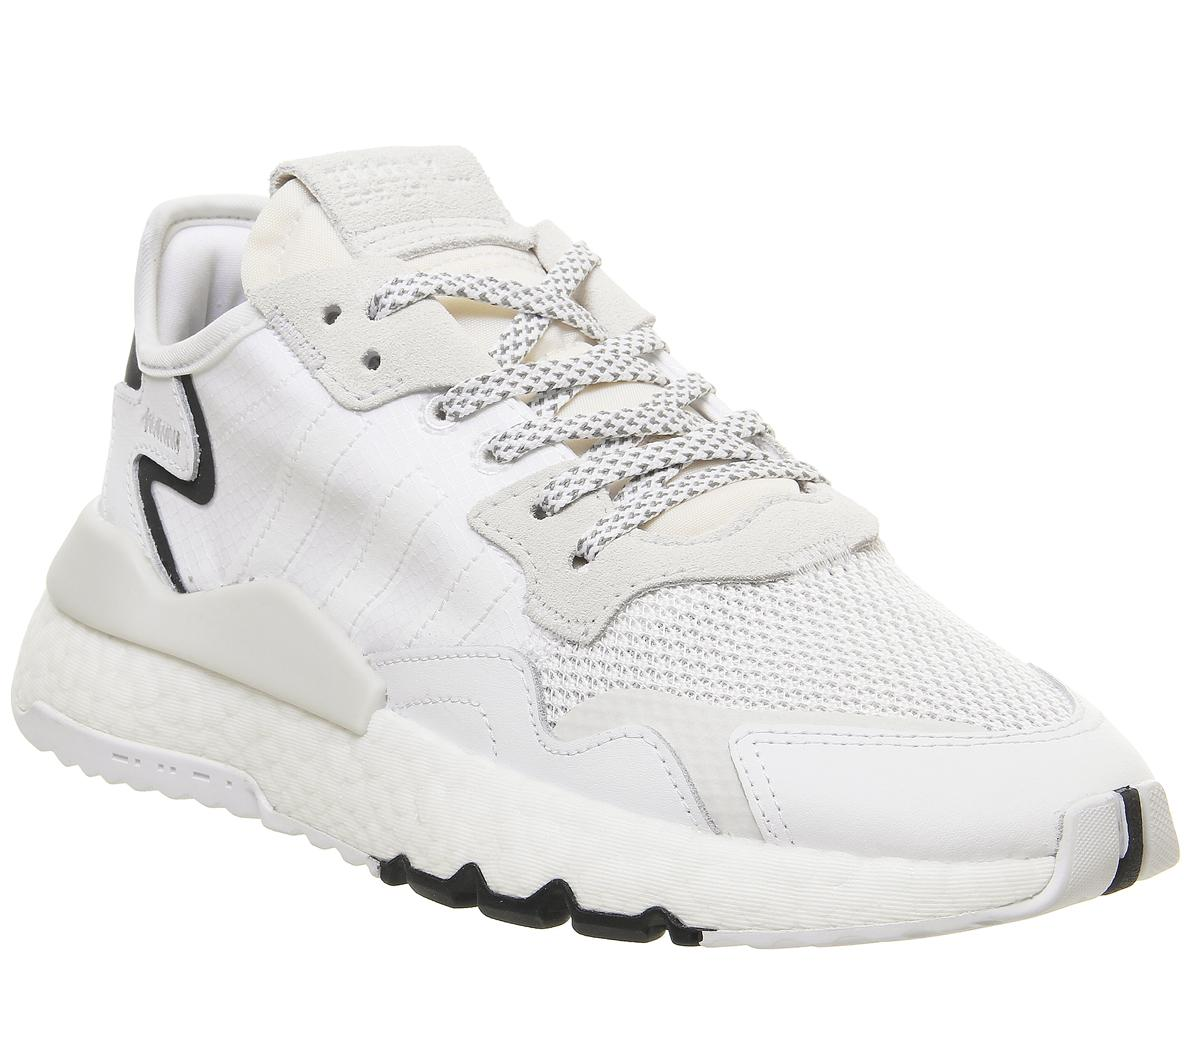 Nite Jogger Boost Jnr Trainers